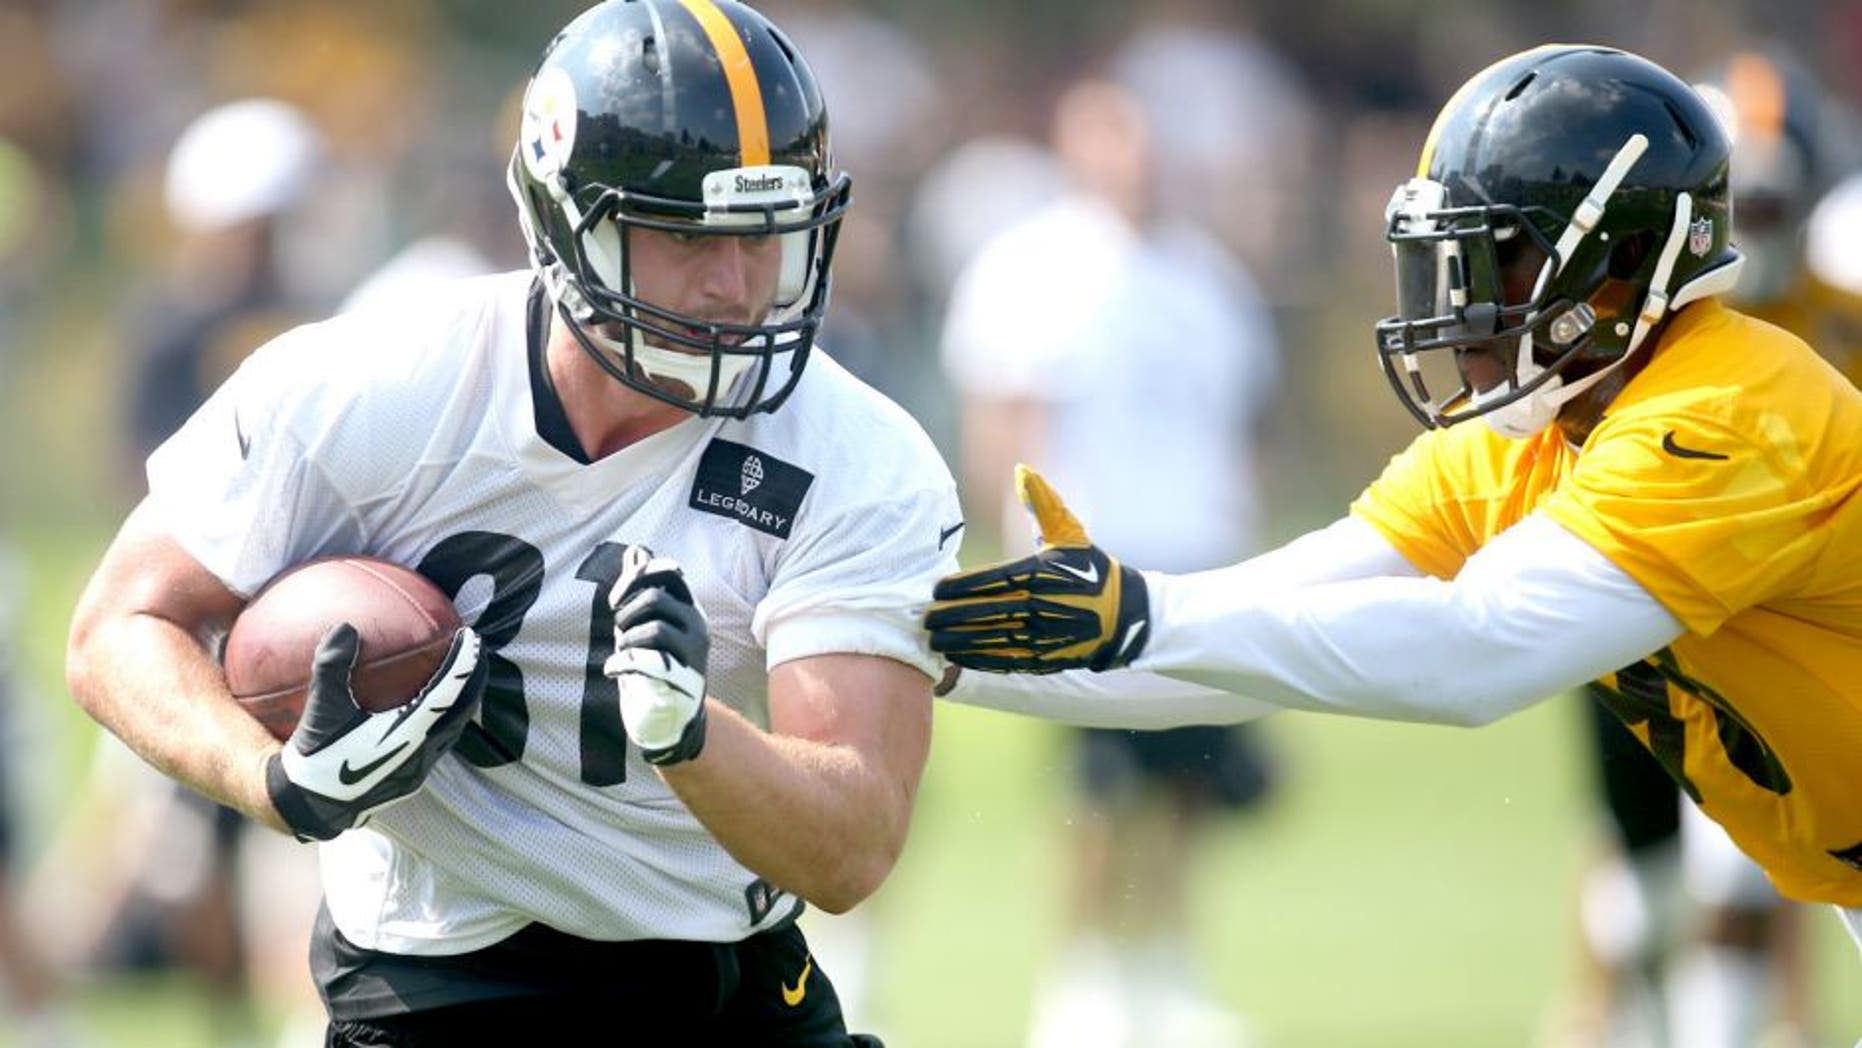 Jul 27, 2015; Latrobe, PA, USA; Pittsburgh Steelers tight end Jesse James (81) runs after a catch as inside linebacker Vince Williams (R) defends during training camp at Saint Vincent College. Mandatory Credit: Charles LeClaire-USA TODAY Sports